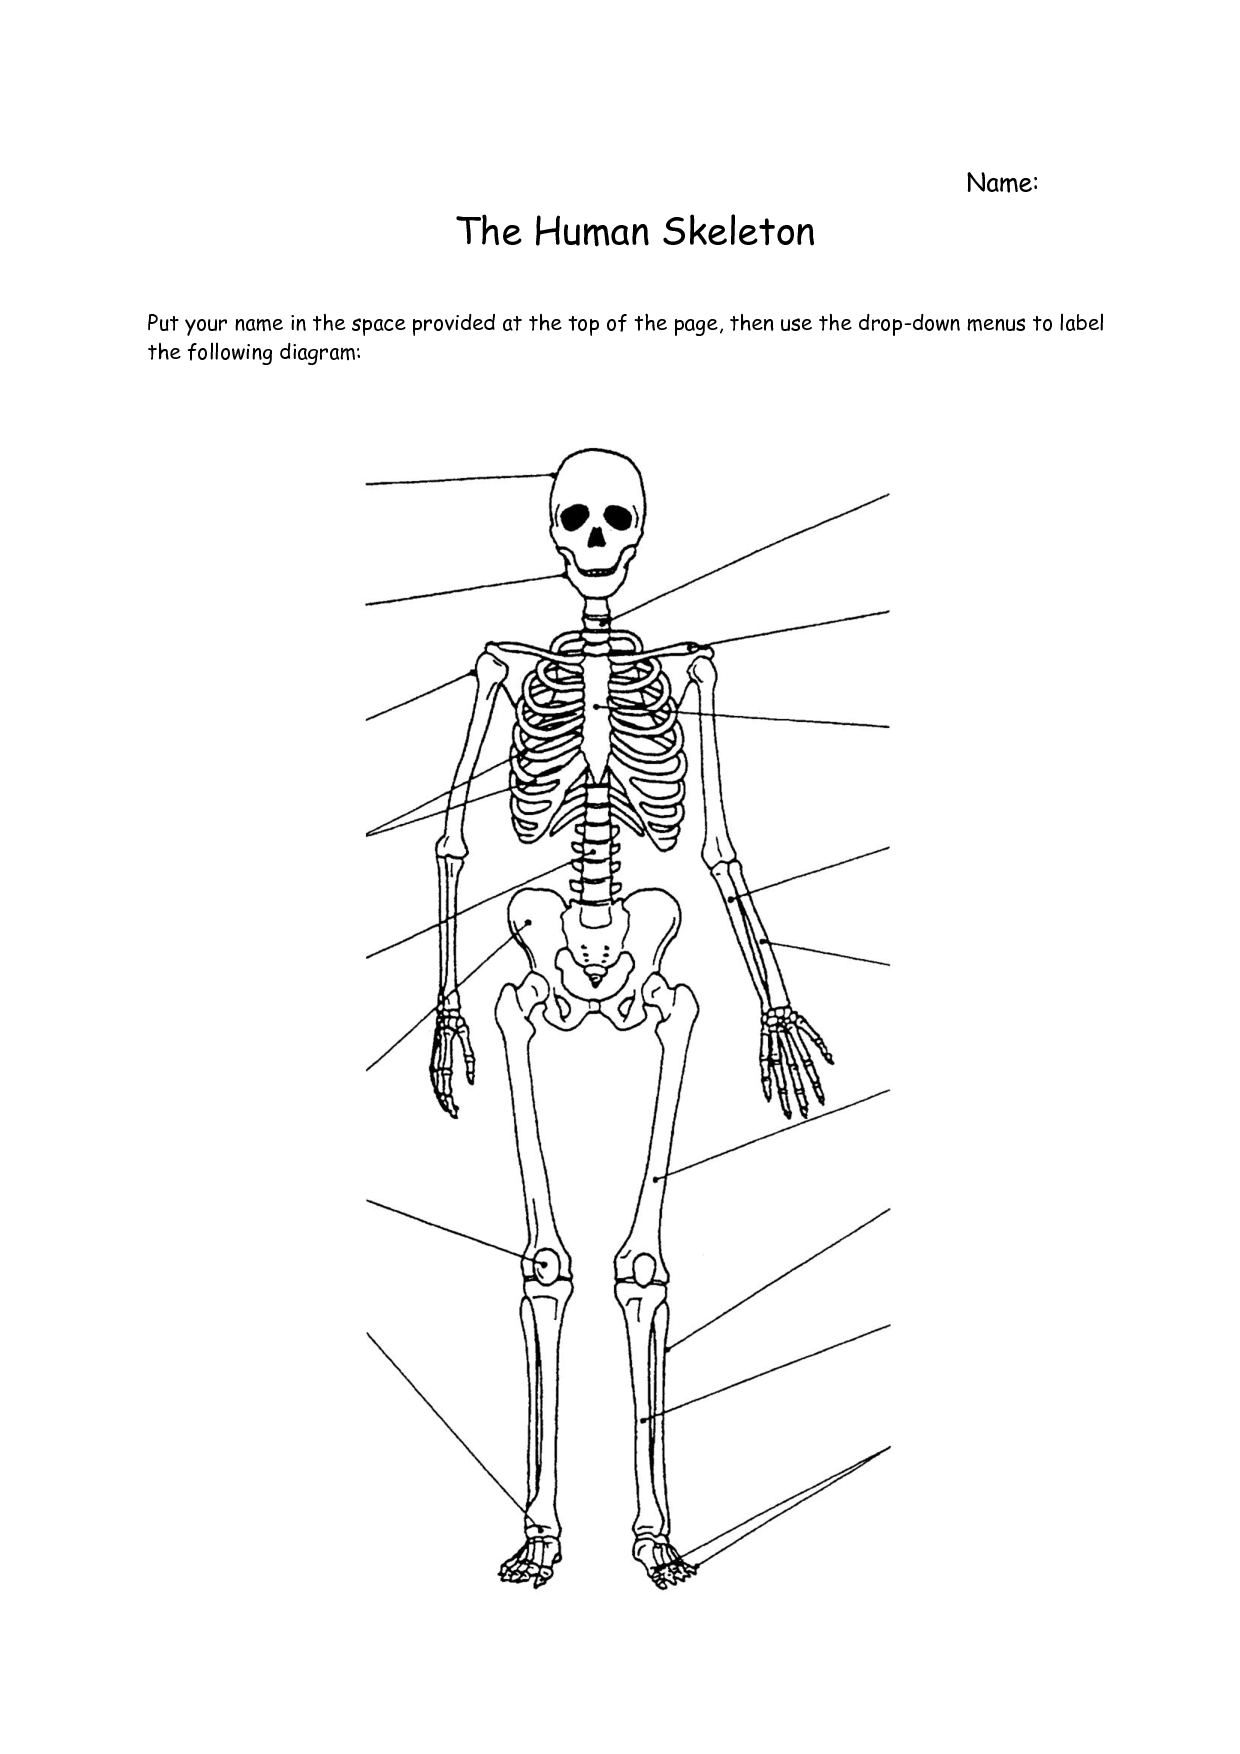 Blank Skeleton Worksheet - Khayav